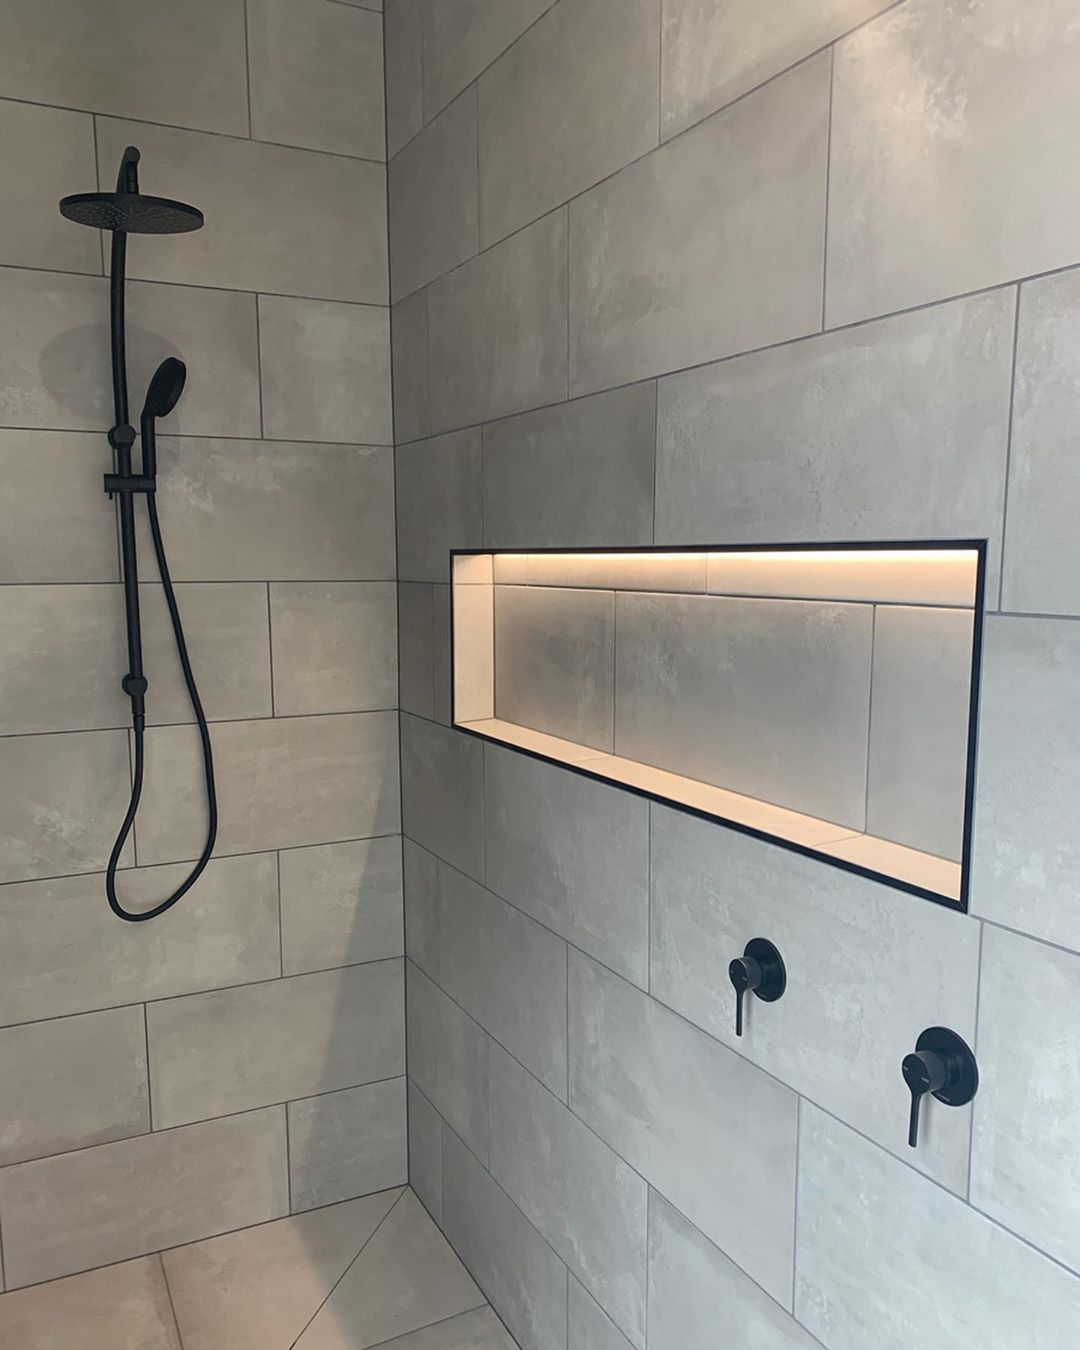 Allchin Builders On Instagram Did You Know Shower Niches Are A Standard Inclusion In All Of Our Homes Shower Niche Bathroom Design Decor Led Strip Lighting